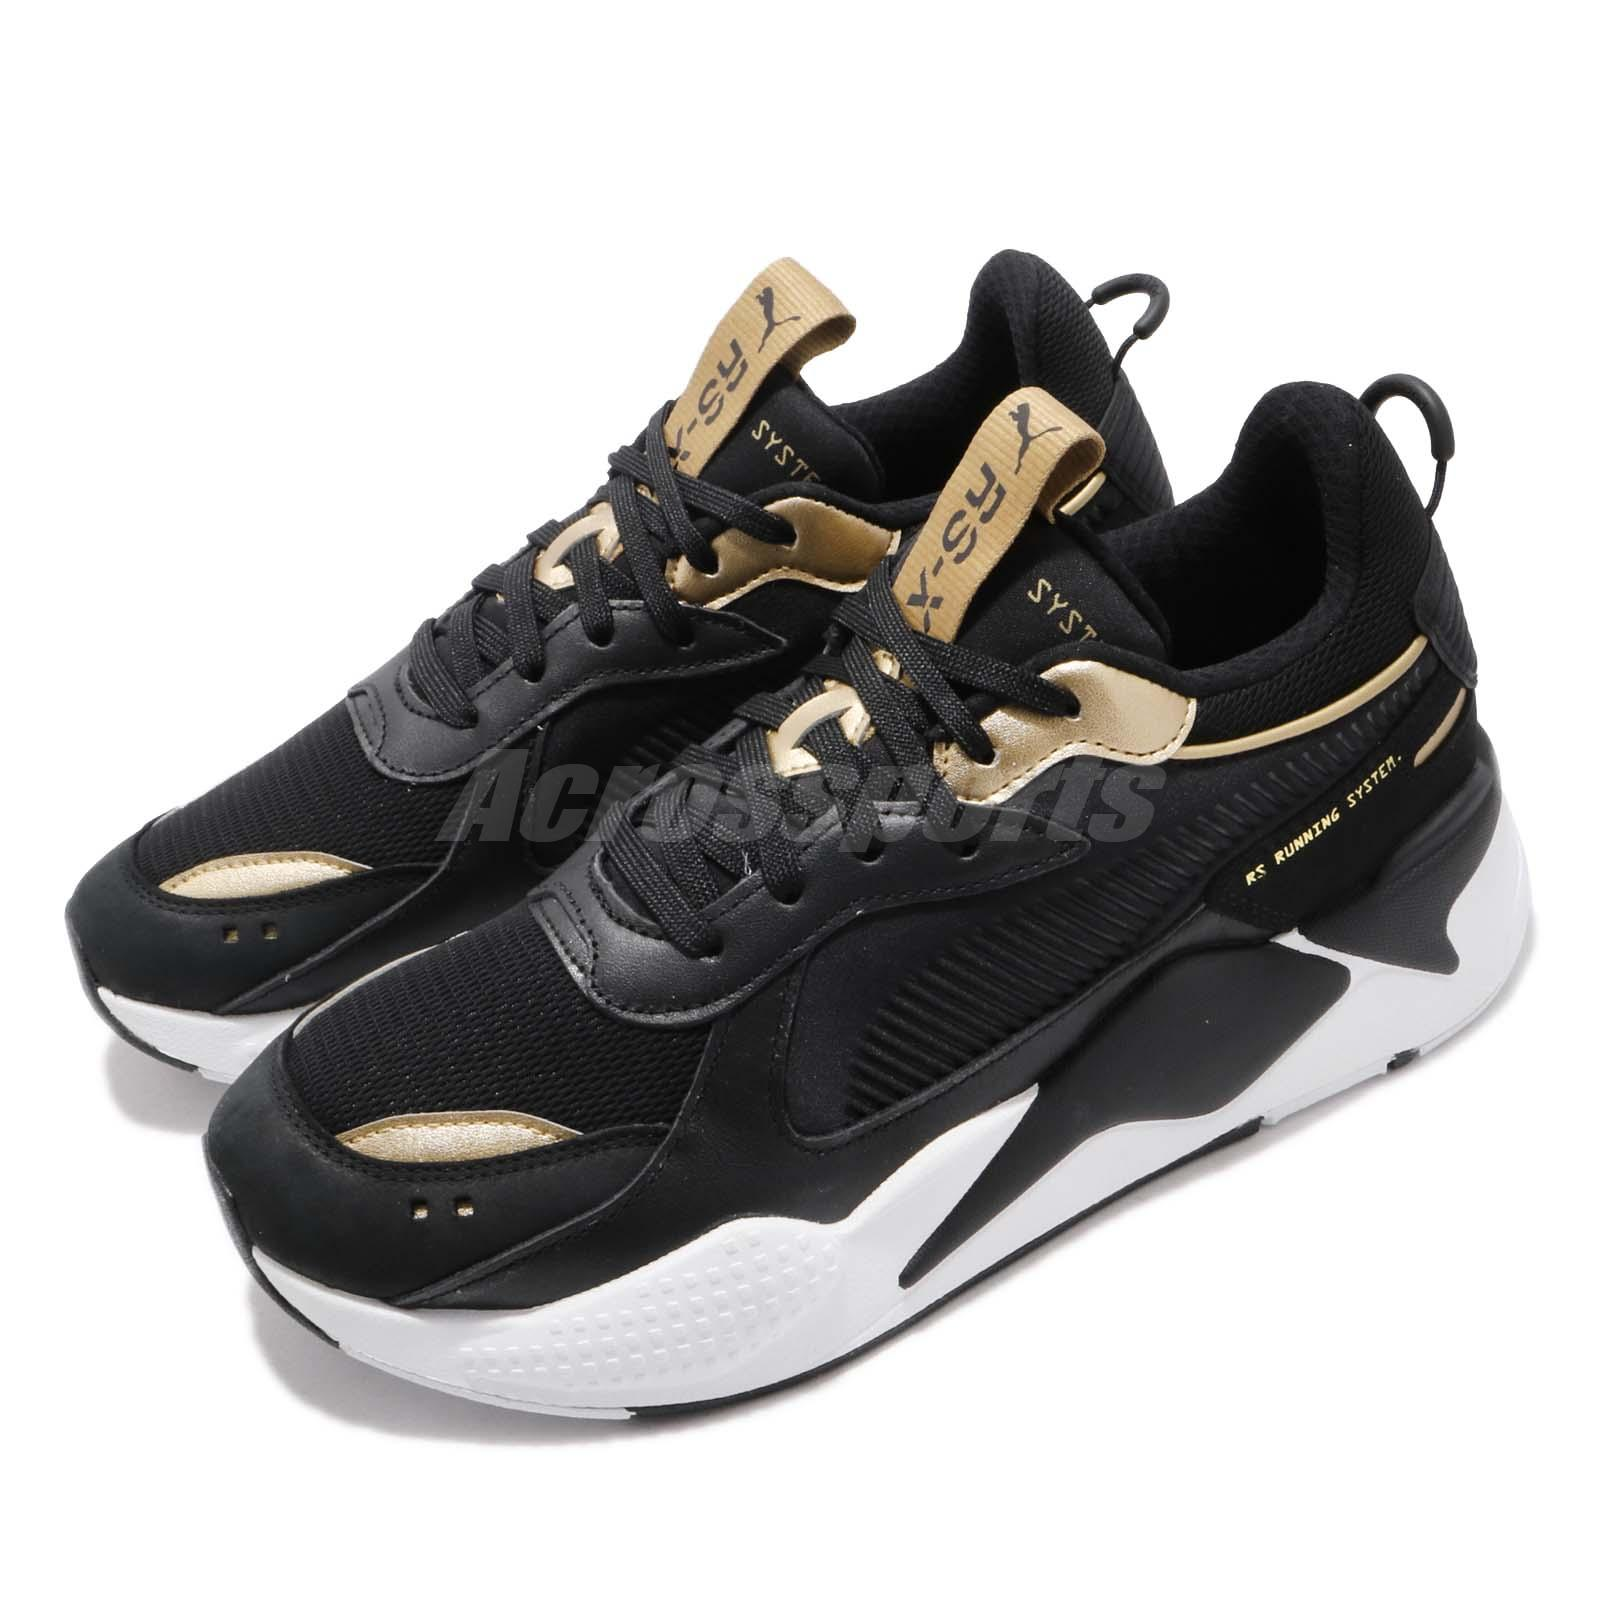 magasin en ligne 40fd5 ce71e Details about Puma RS-X Trophy Black Gold White Men Running System Shoes  Sneakers 369451-01